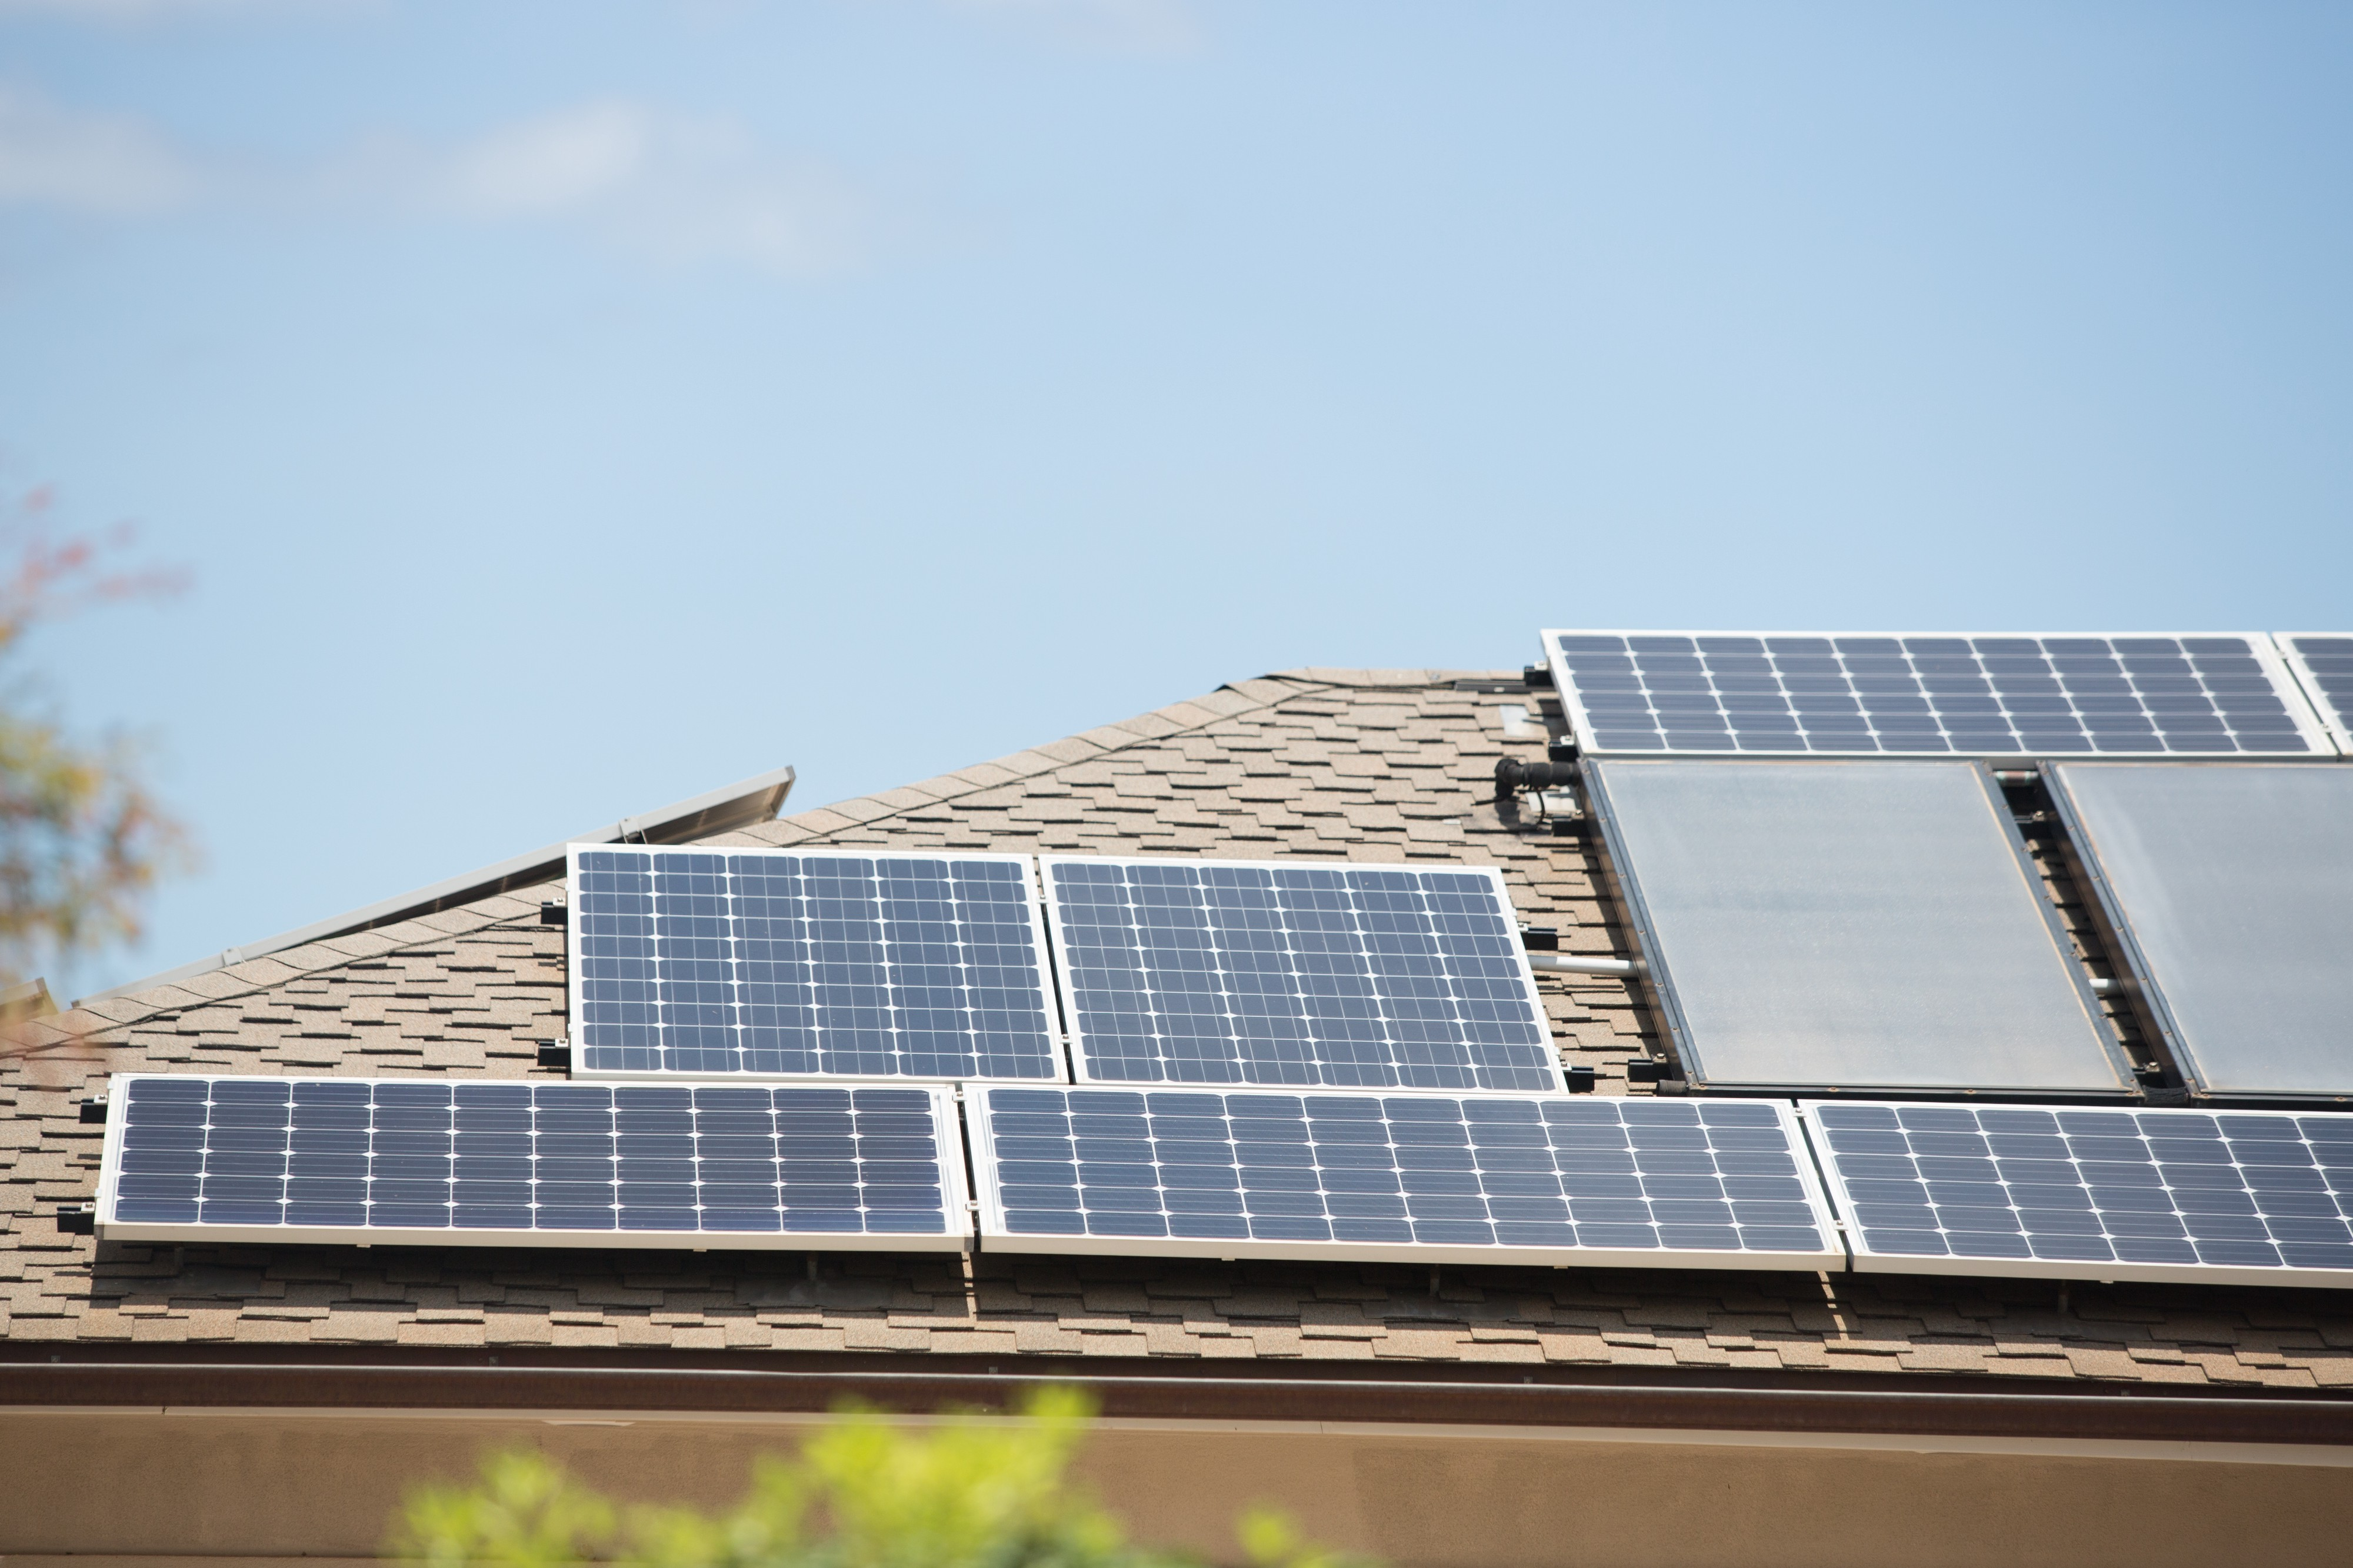 Apply online to install rooftop solar under our Customer